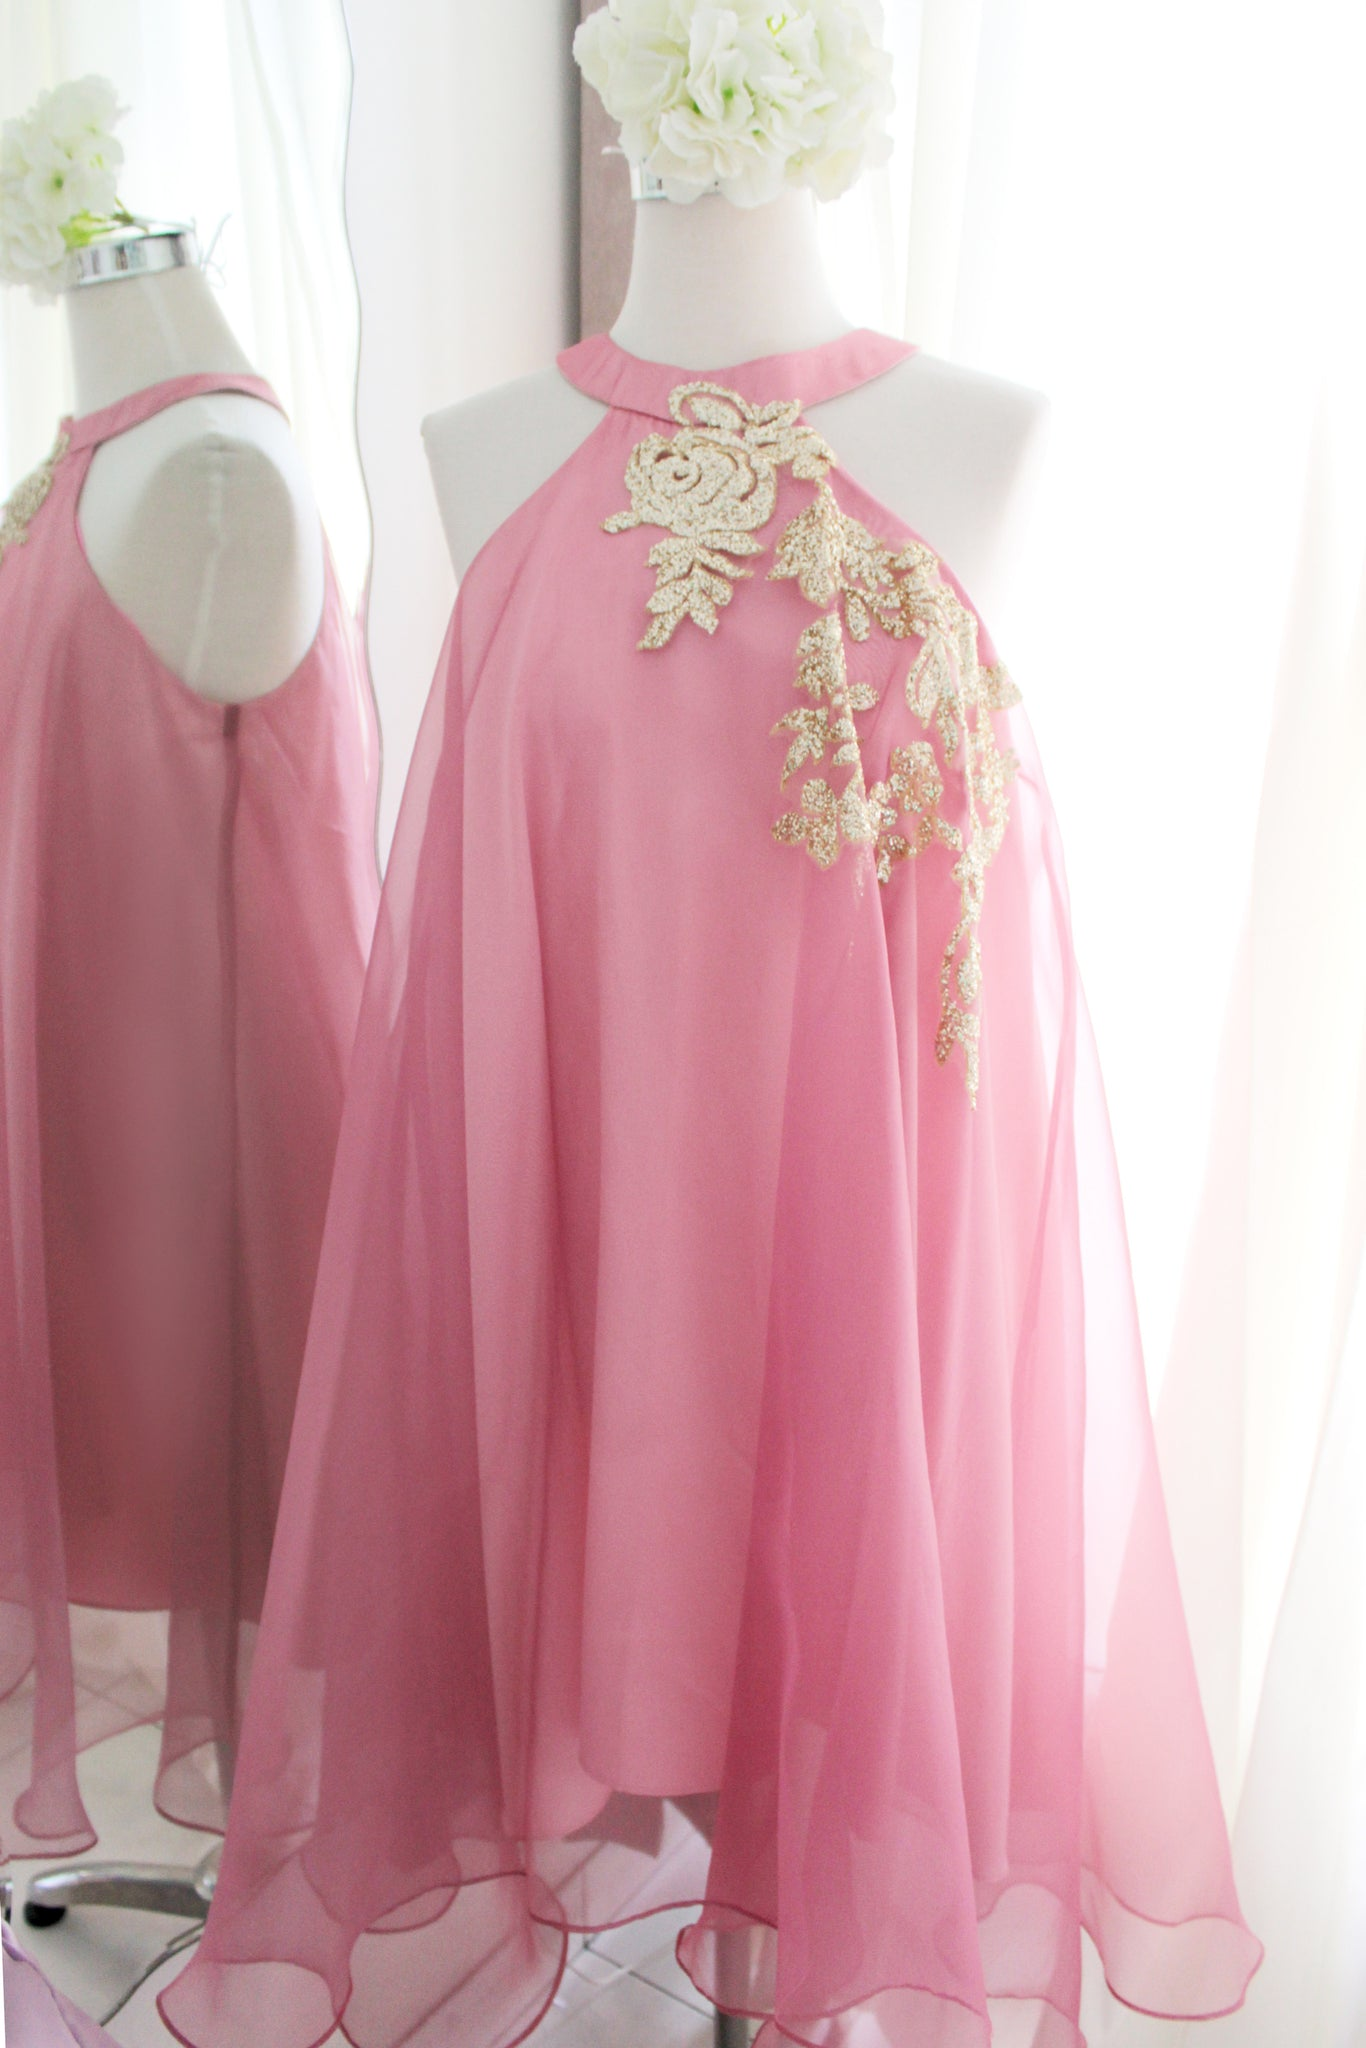 Alhea Dress in dusty pink